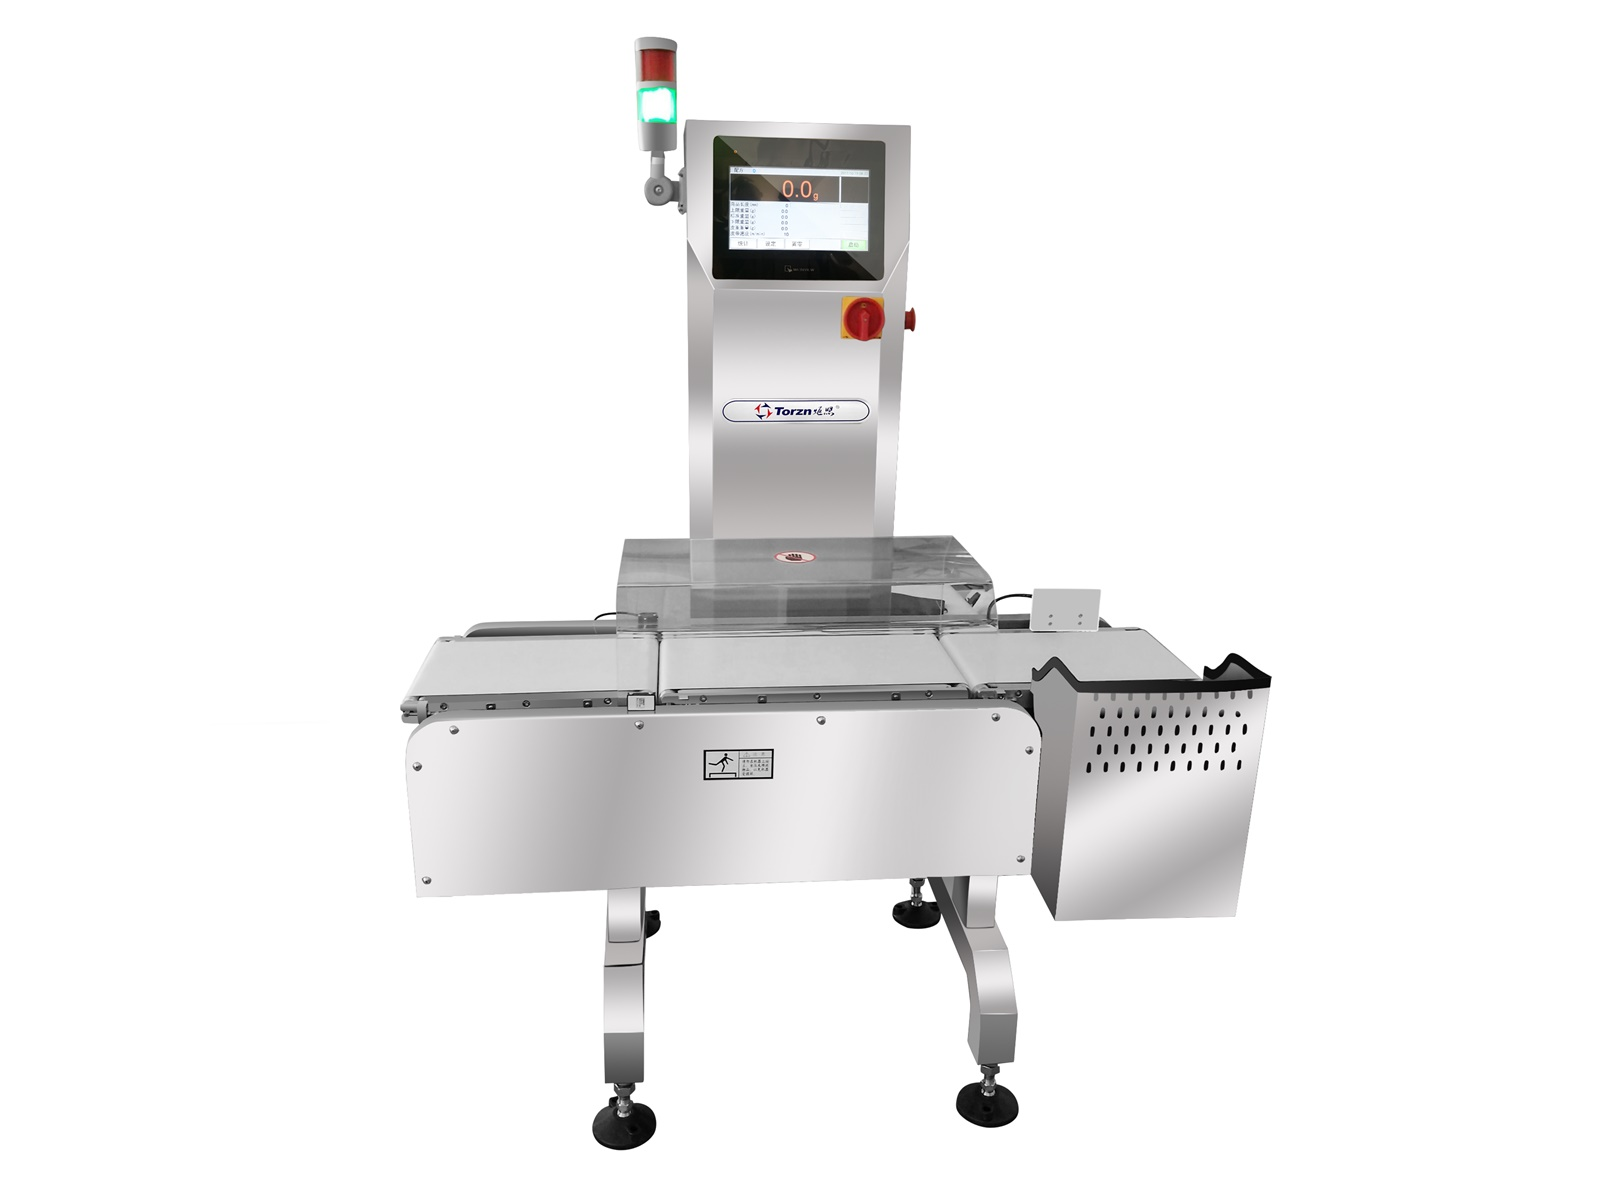 CW-300 Checkweigher